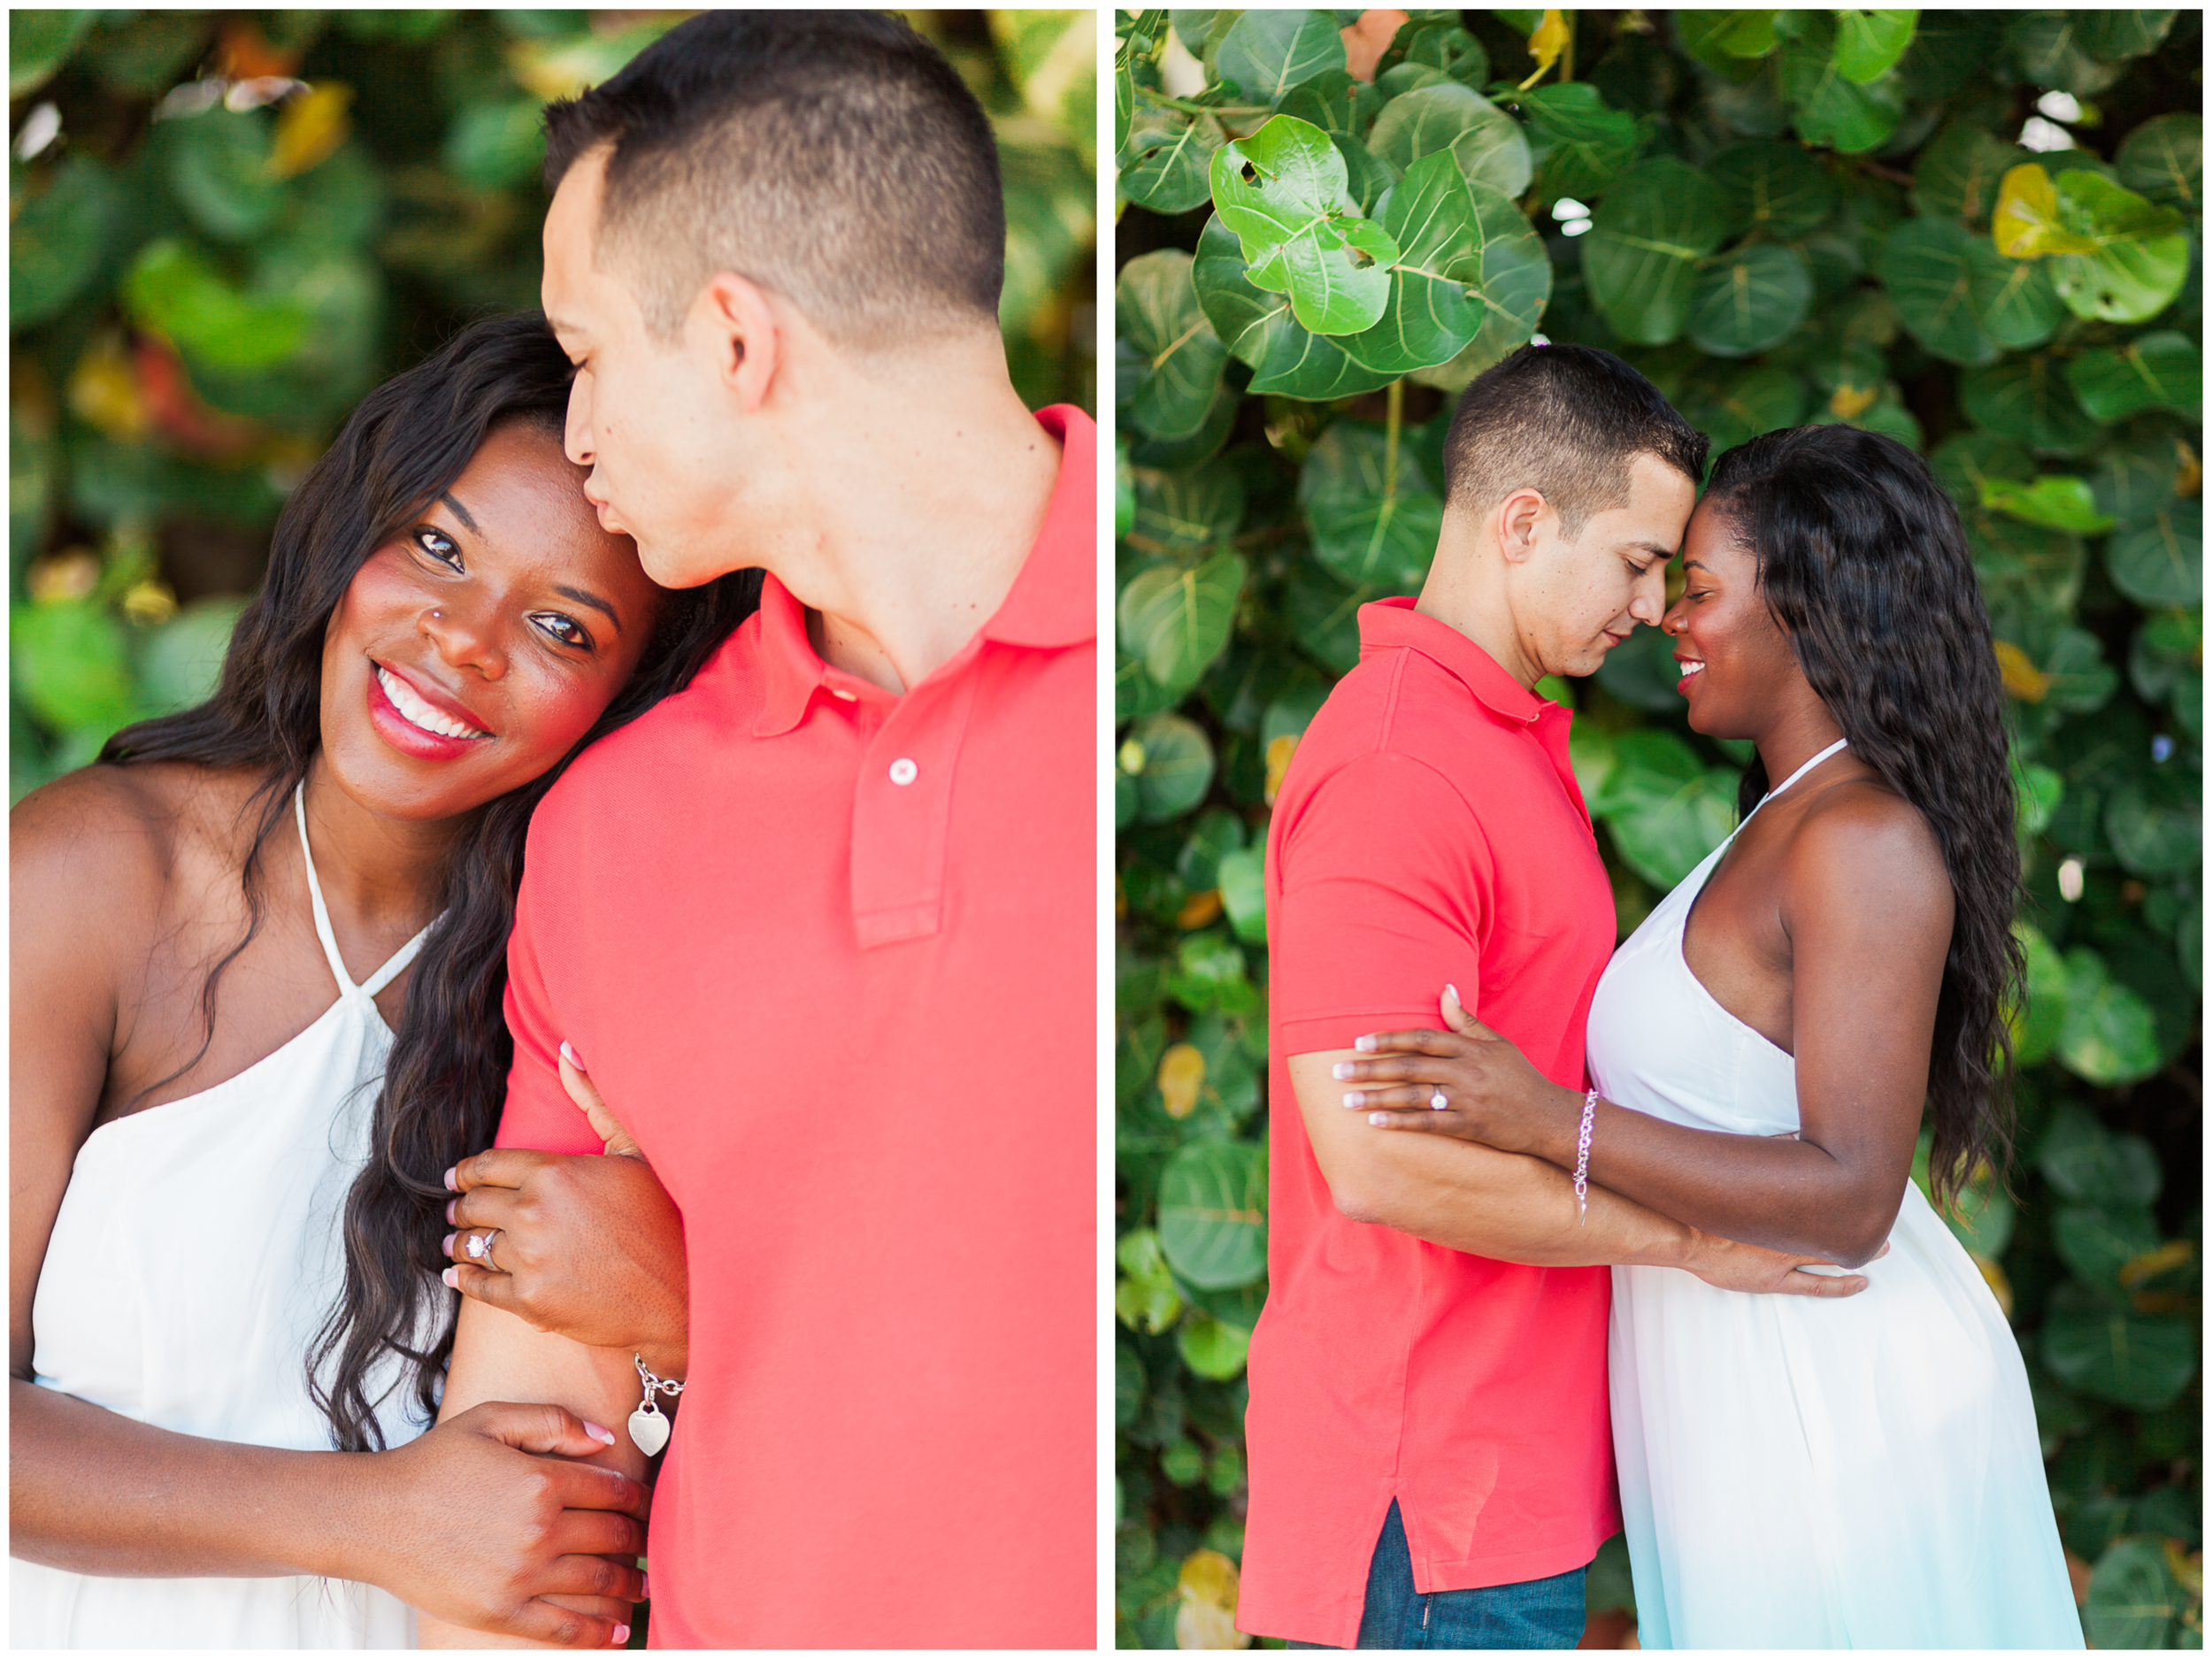 Tiara and Luis Engagement Session | Pelican Beach | Satellite Beach, Florida | Michelle Mock Photography